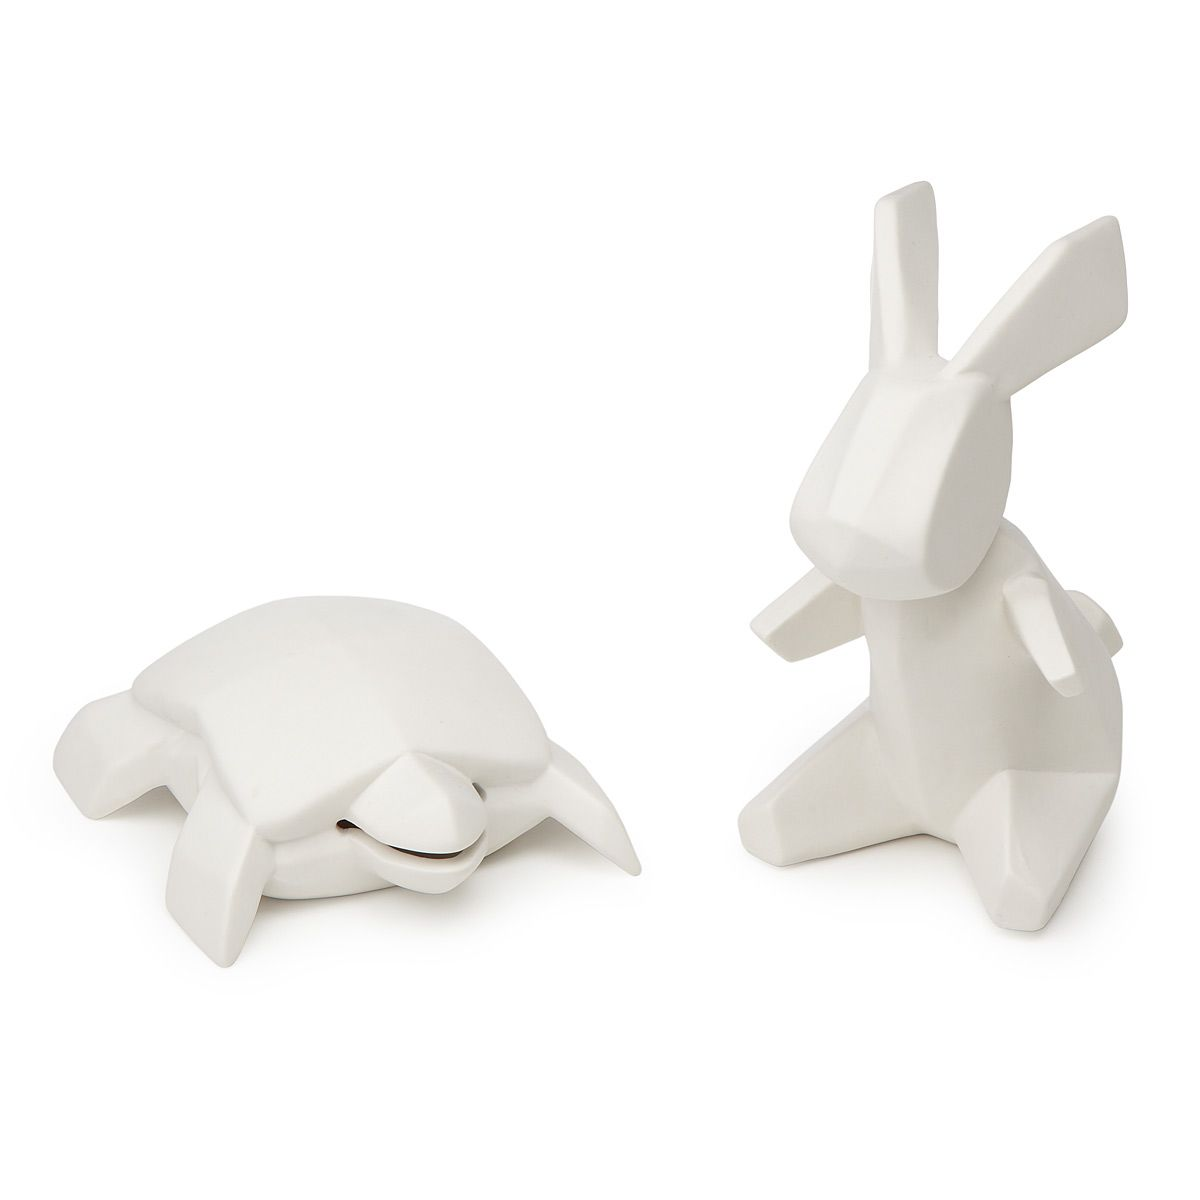 Animal Coin Banks Porcelain Tortoise And Hare Banks ウサギ 亀 と ウサギ